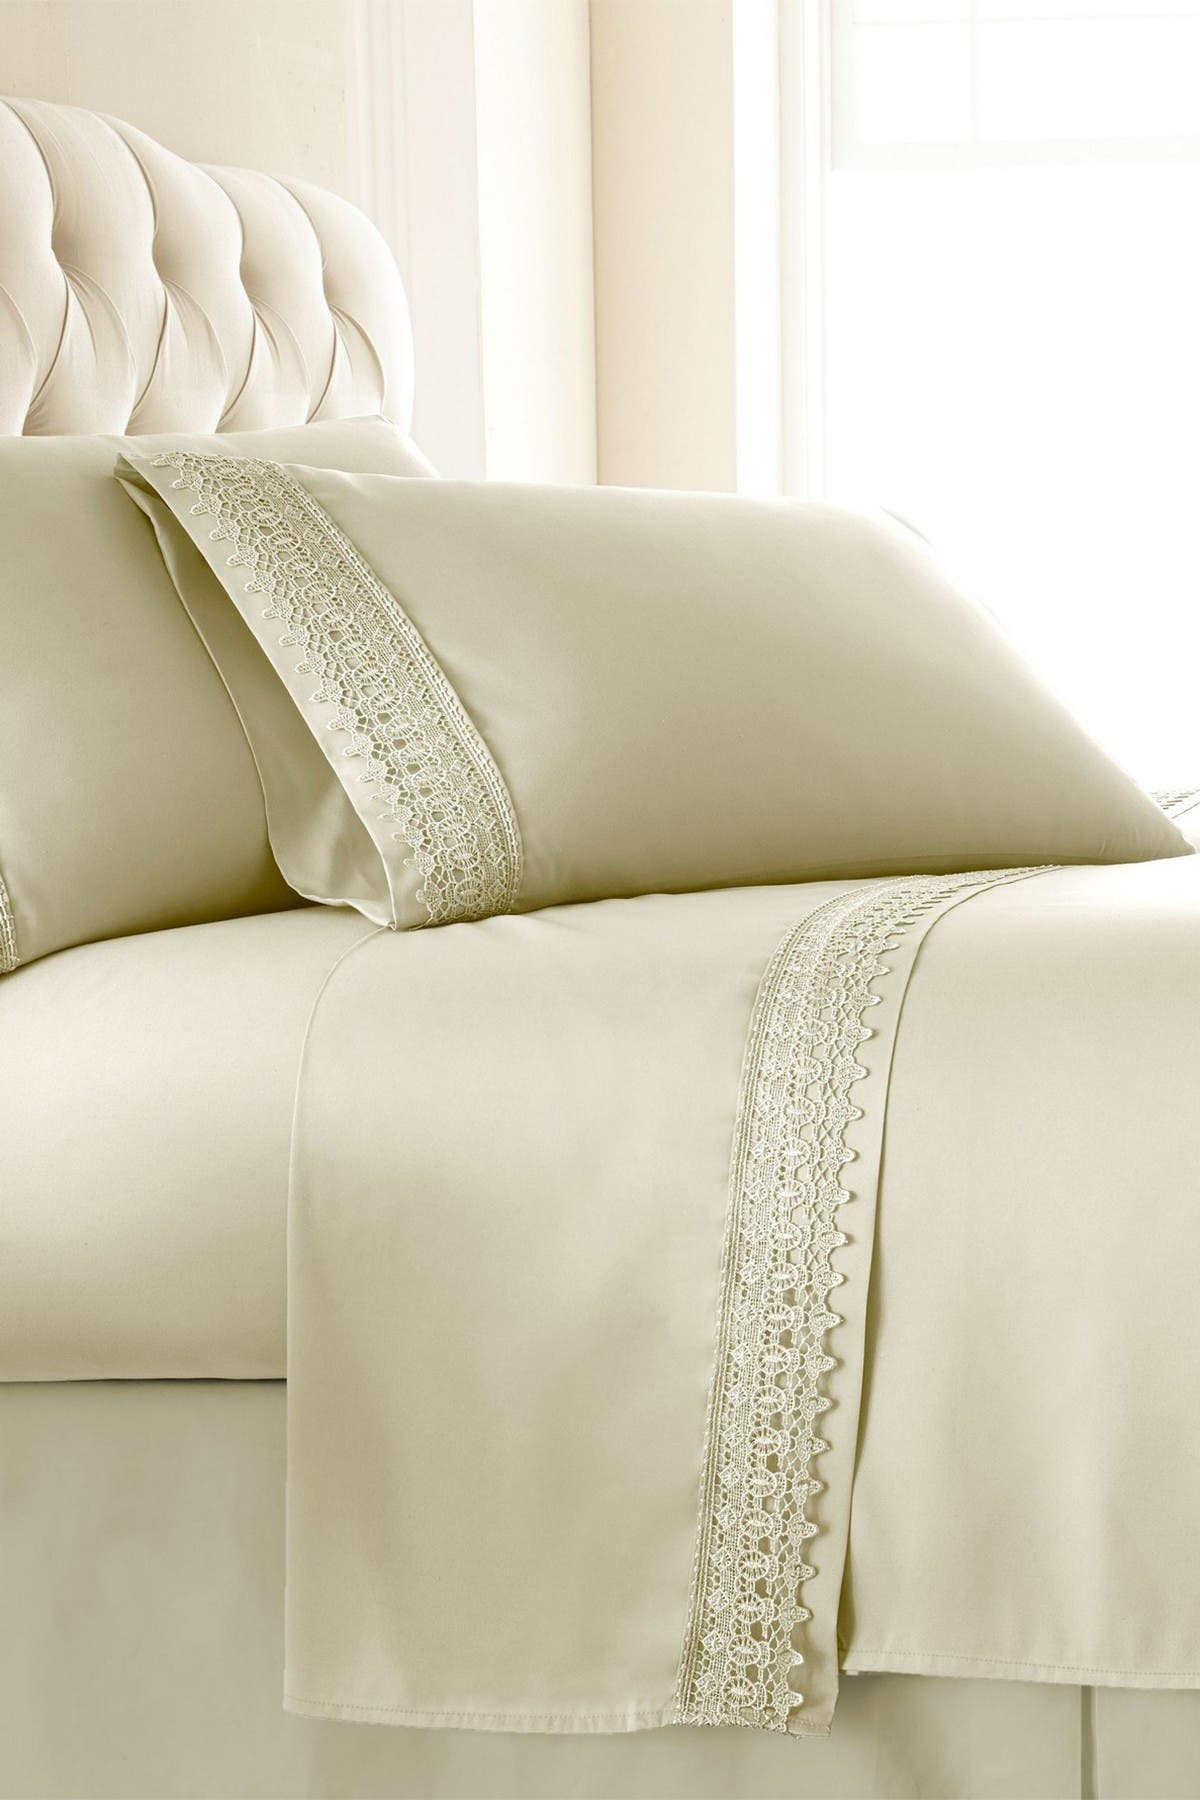 Image of SOUTHSHORE FINE LINENS Premium Collection Double Brushed Lace Extra Deep Pocket 4-Piece Sheet Sets - Queen